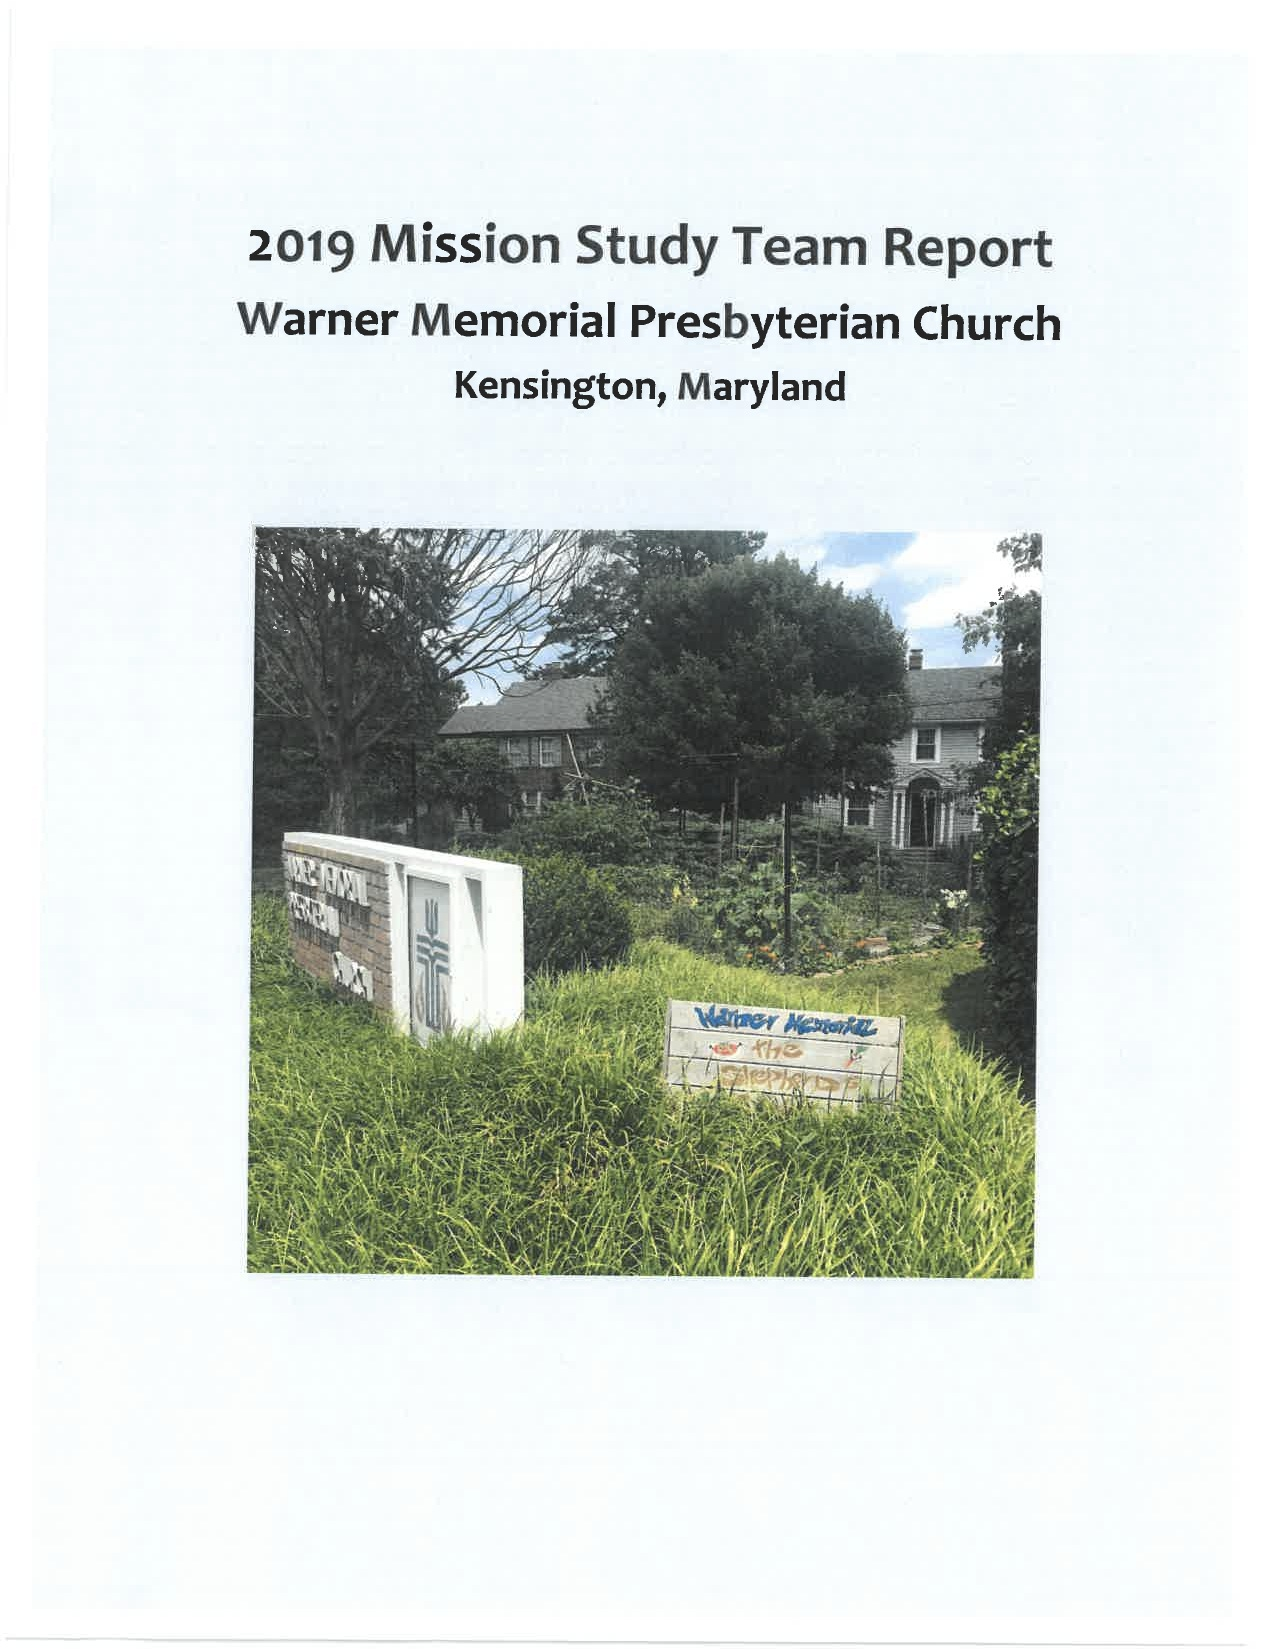 http://www.warnermemorial.org/uploads/Mission-Study-Team-Report.jpg